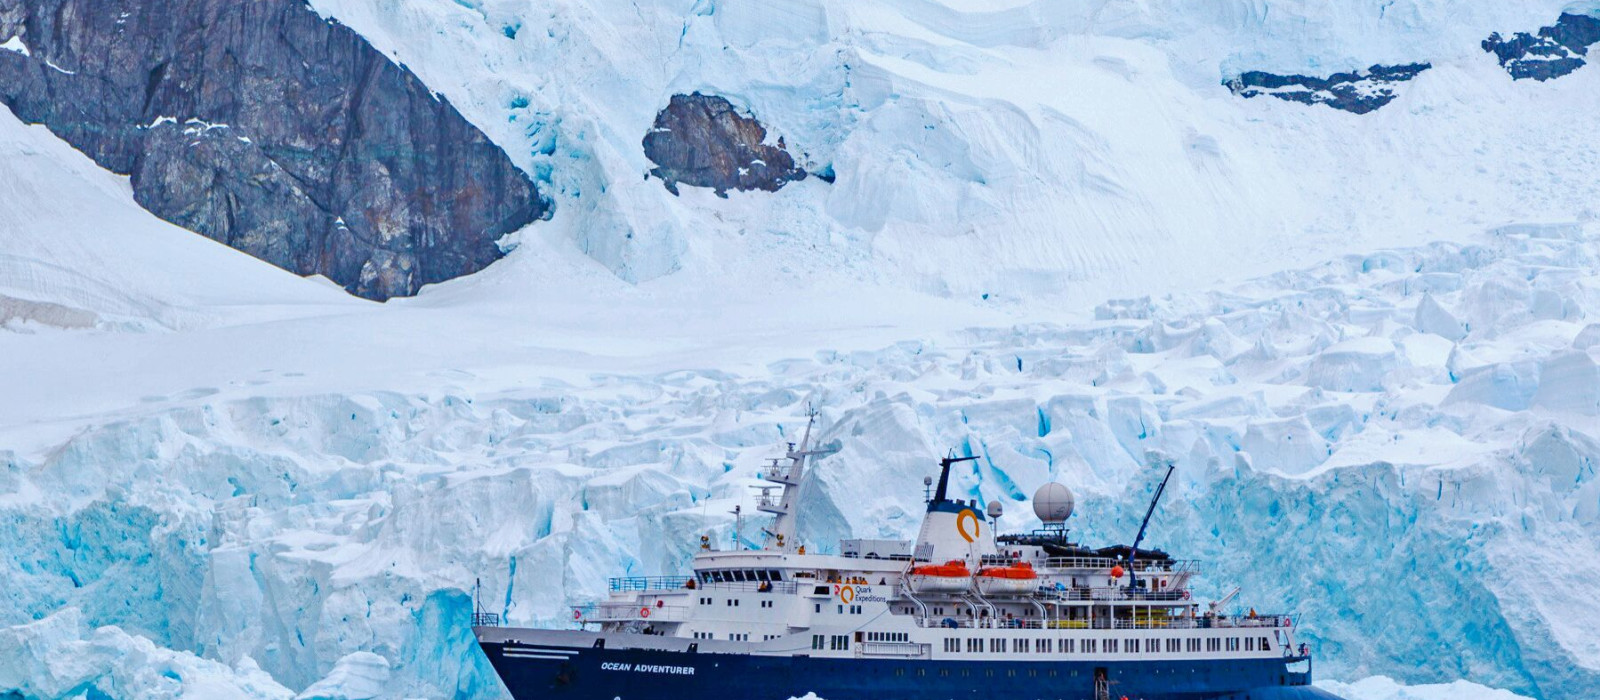 Hotel Ocean Adventurer by Quark Expeditions Antarctica